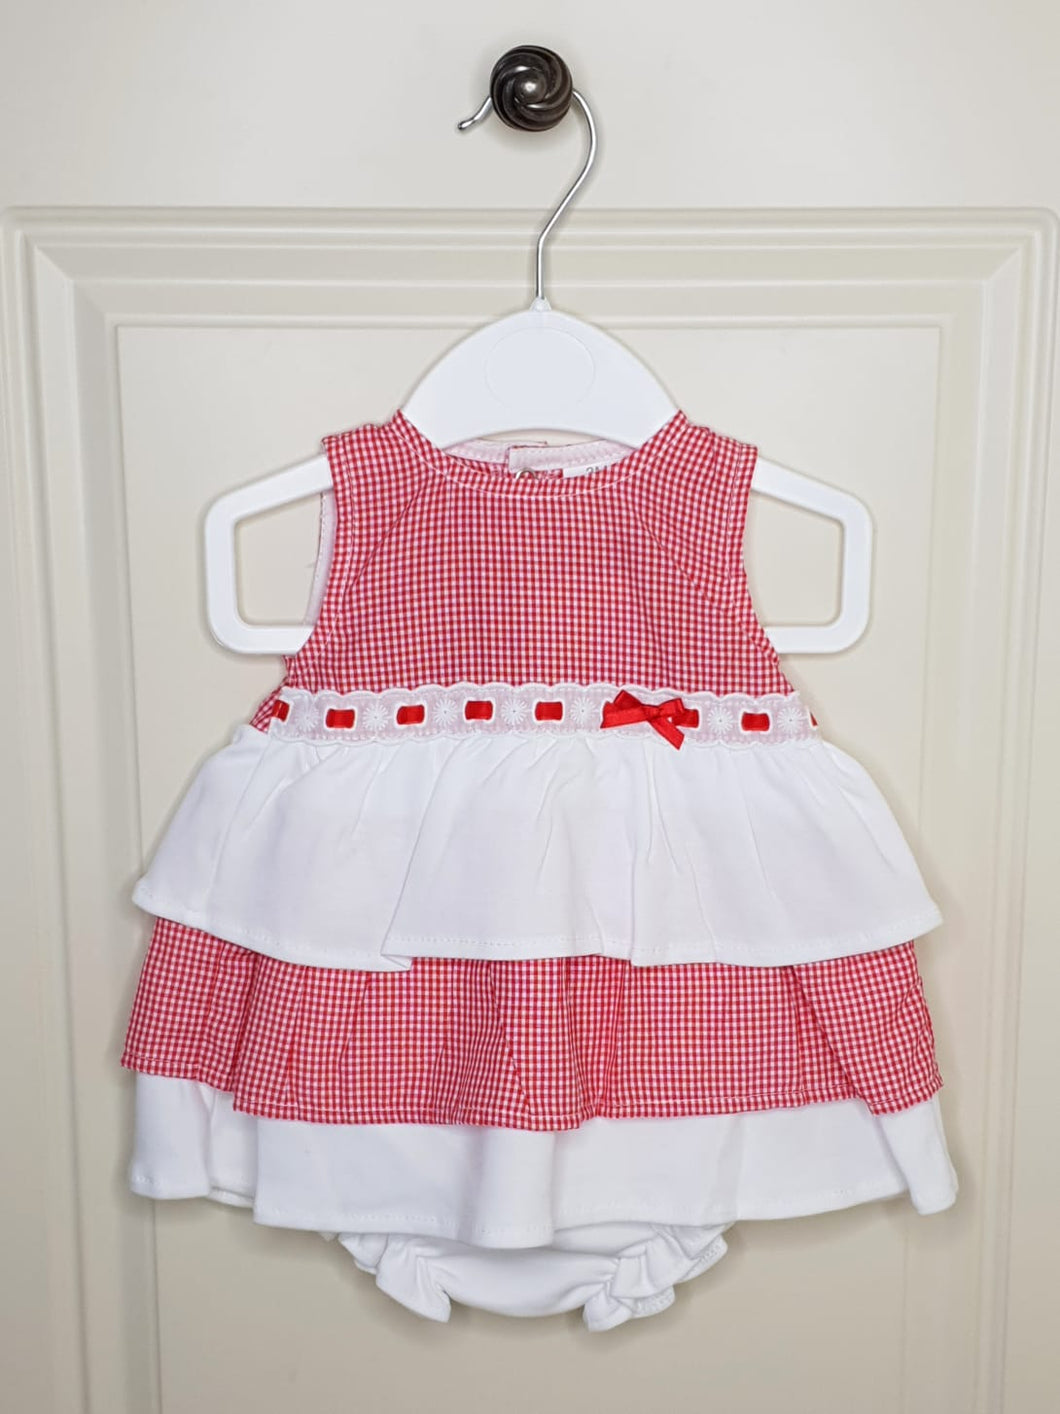 Spanish Layered Dress With Bloomers